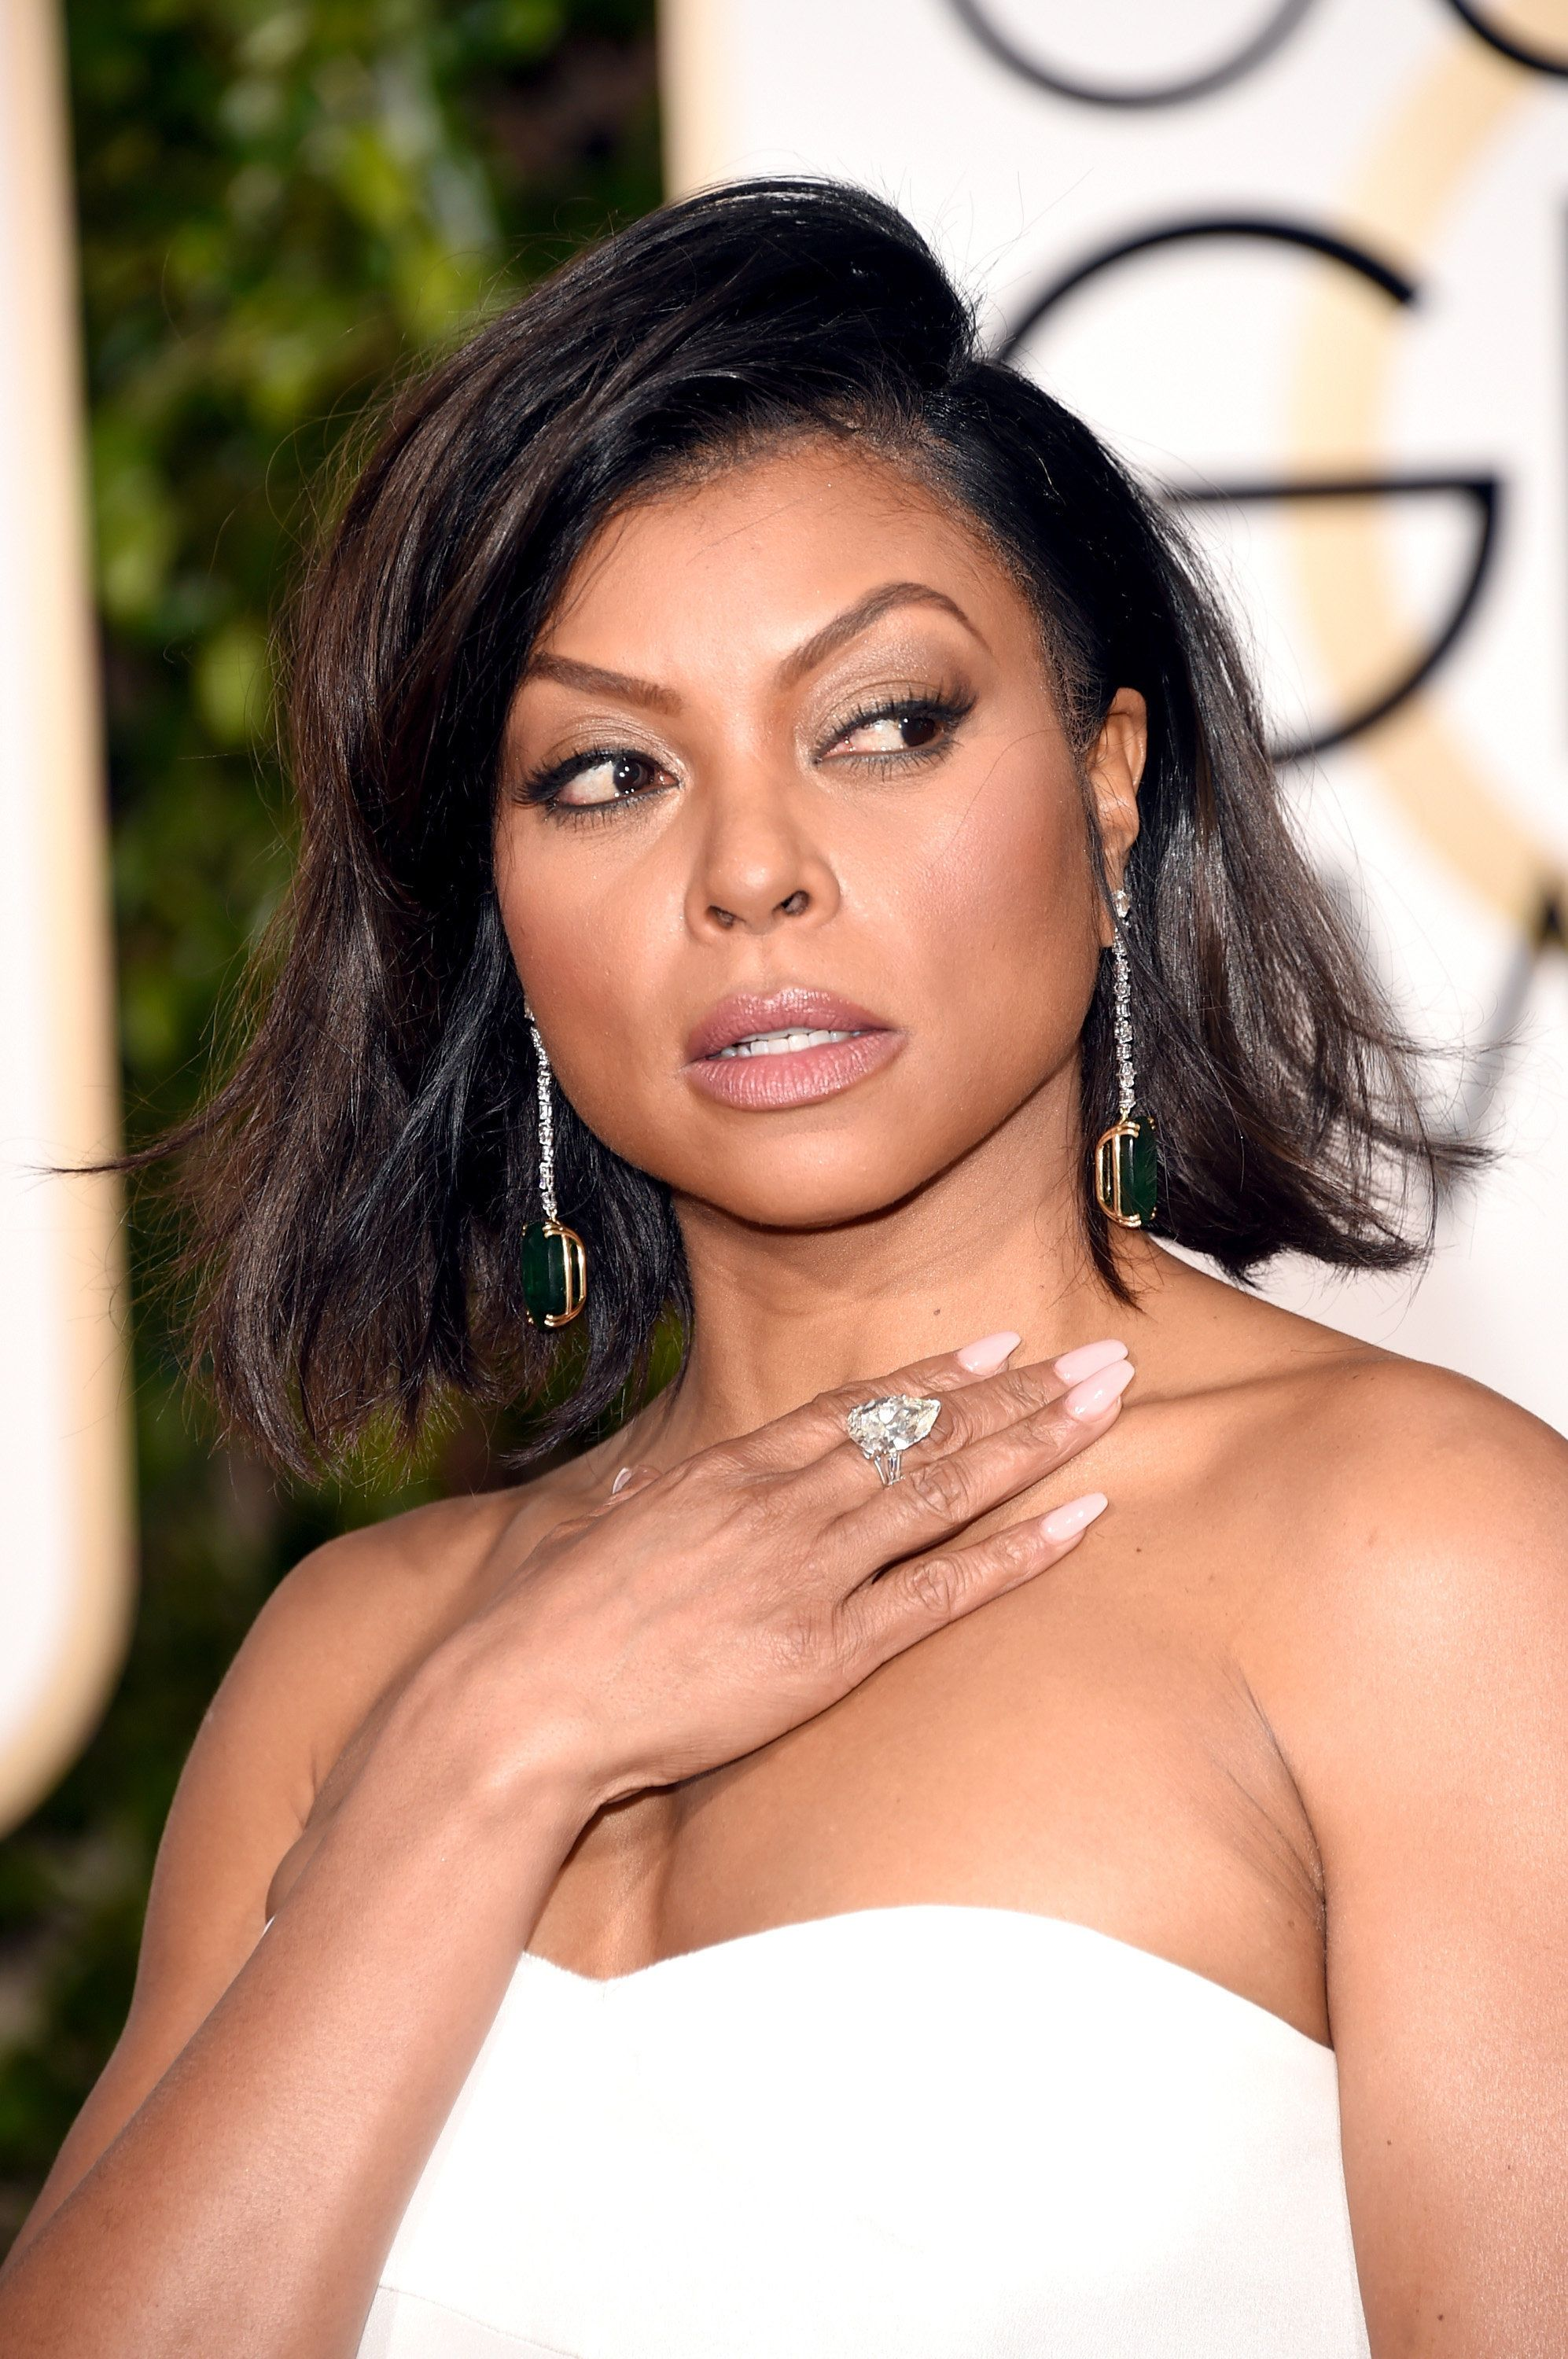 Taraji P. Henson shows off her statement earrings at the 73rd Annual Golden Globe Awards in Beverly Hills, California.